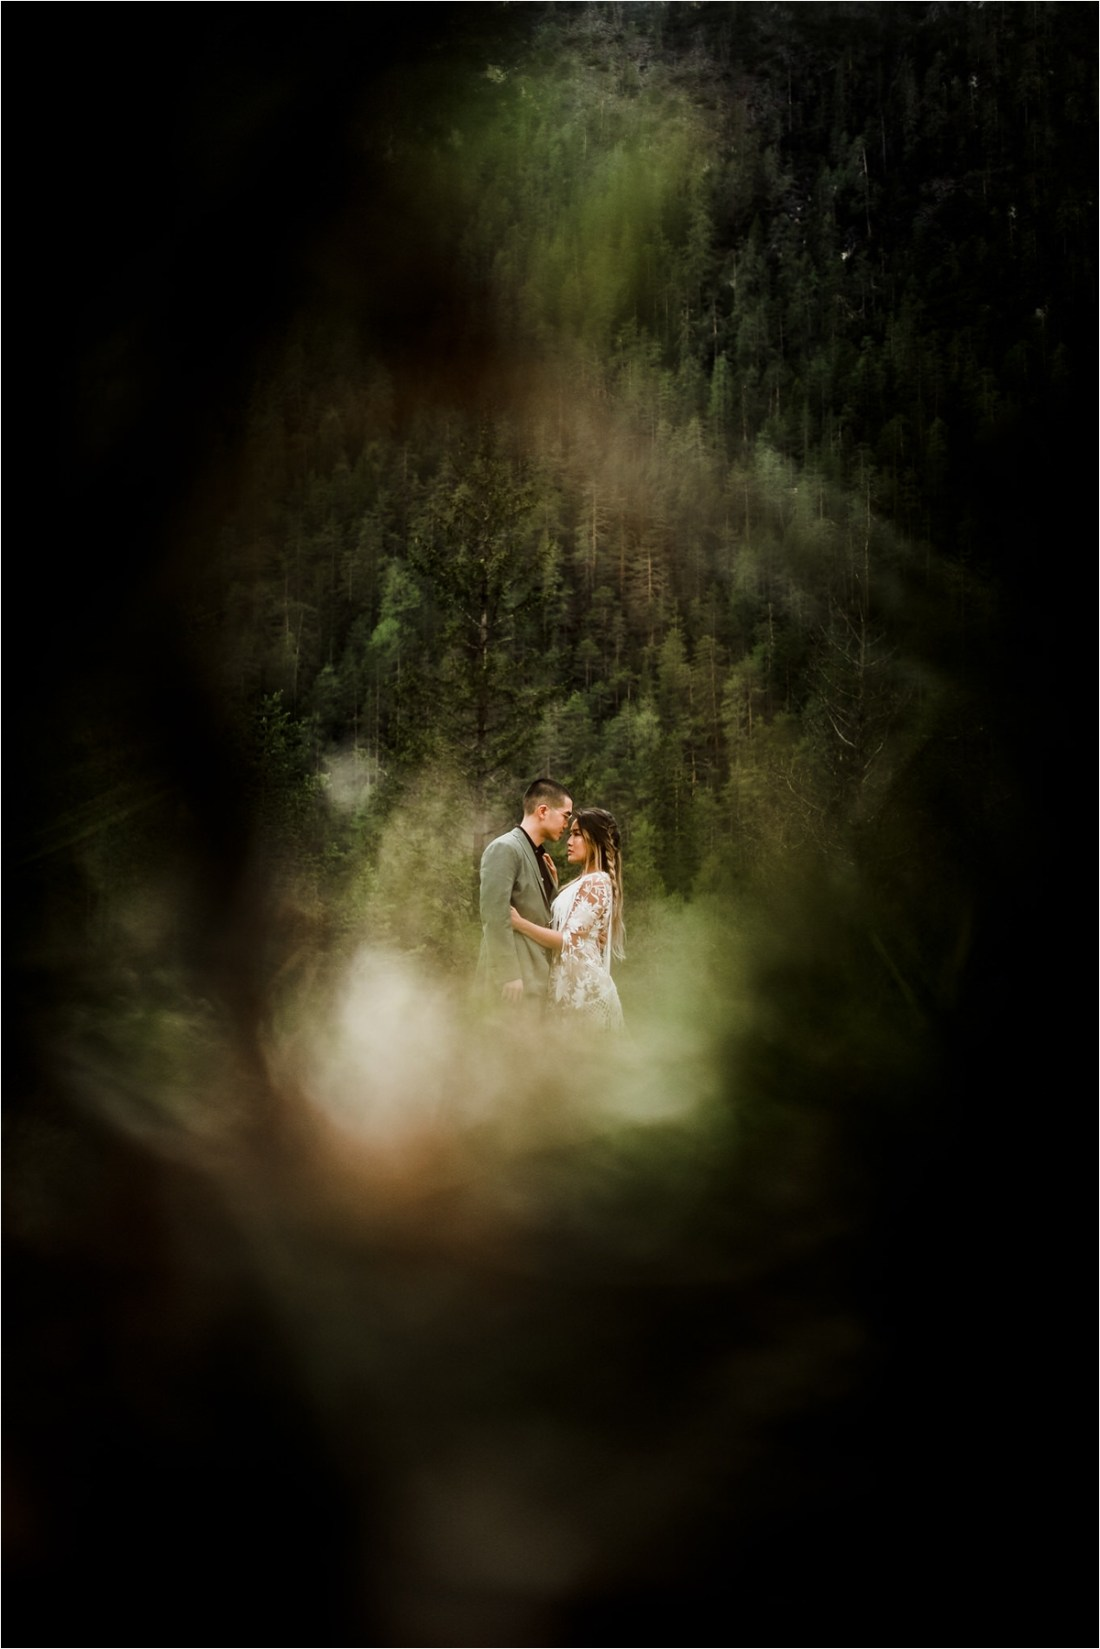 A picture of Christina & Ted through the branches of the trees in the Dolomites forest by Wild Connections Photography